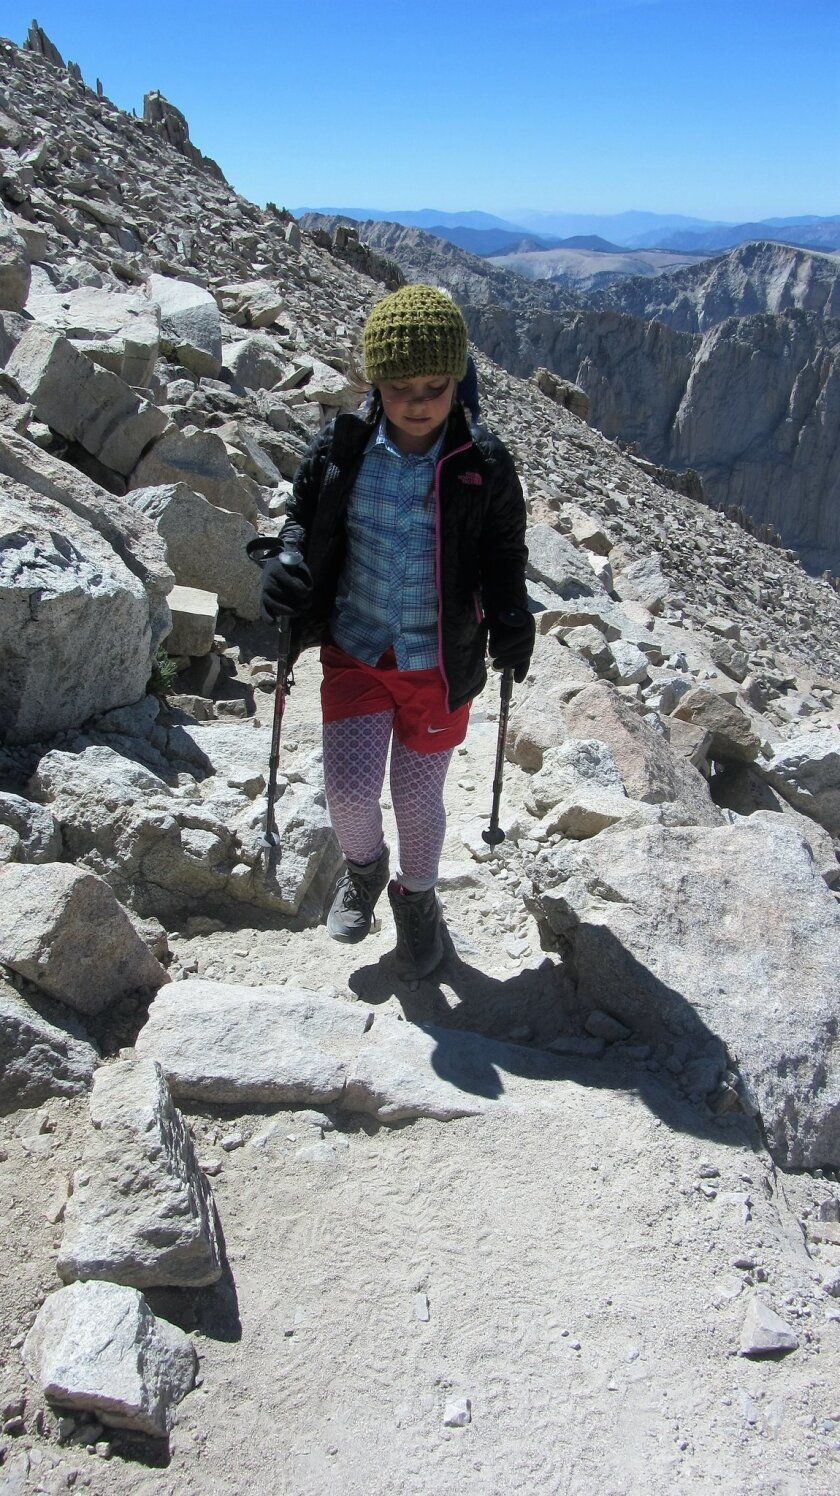 """Now I feel like I can climb any mountain!"" — Jenna Jaffe, 10"